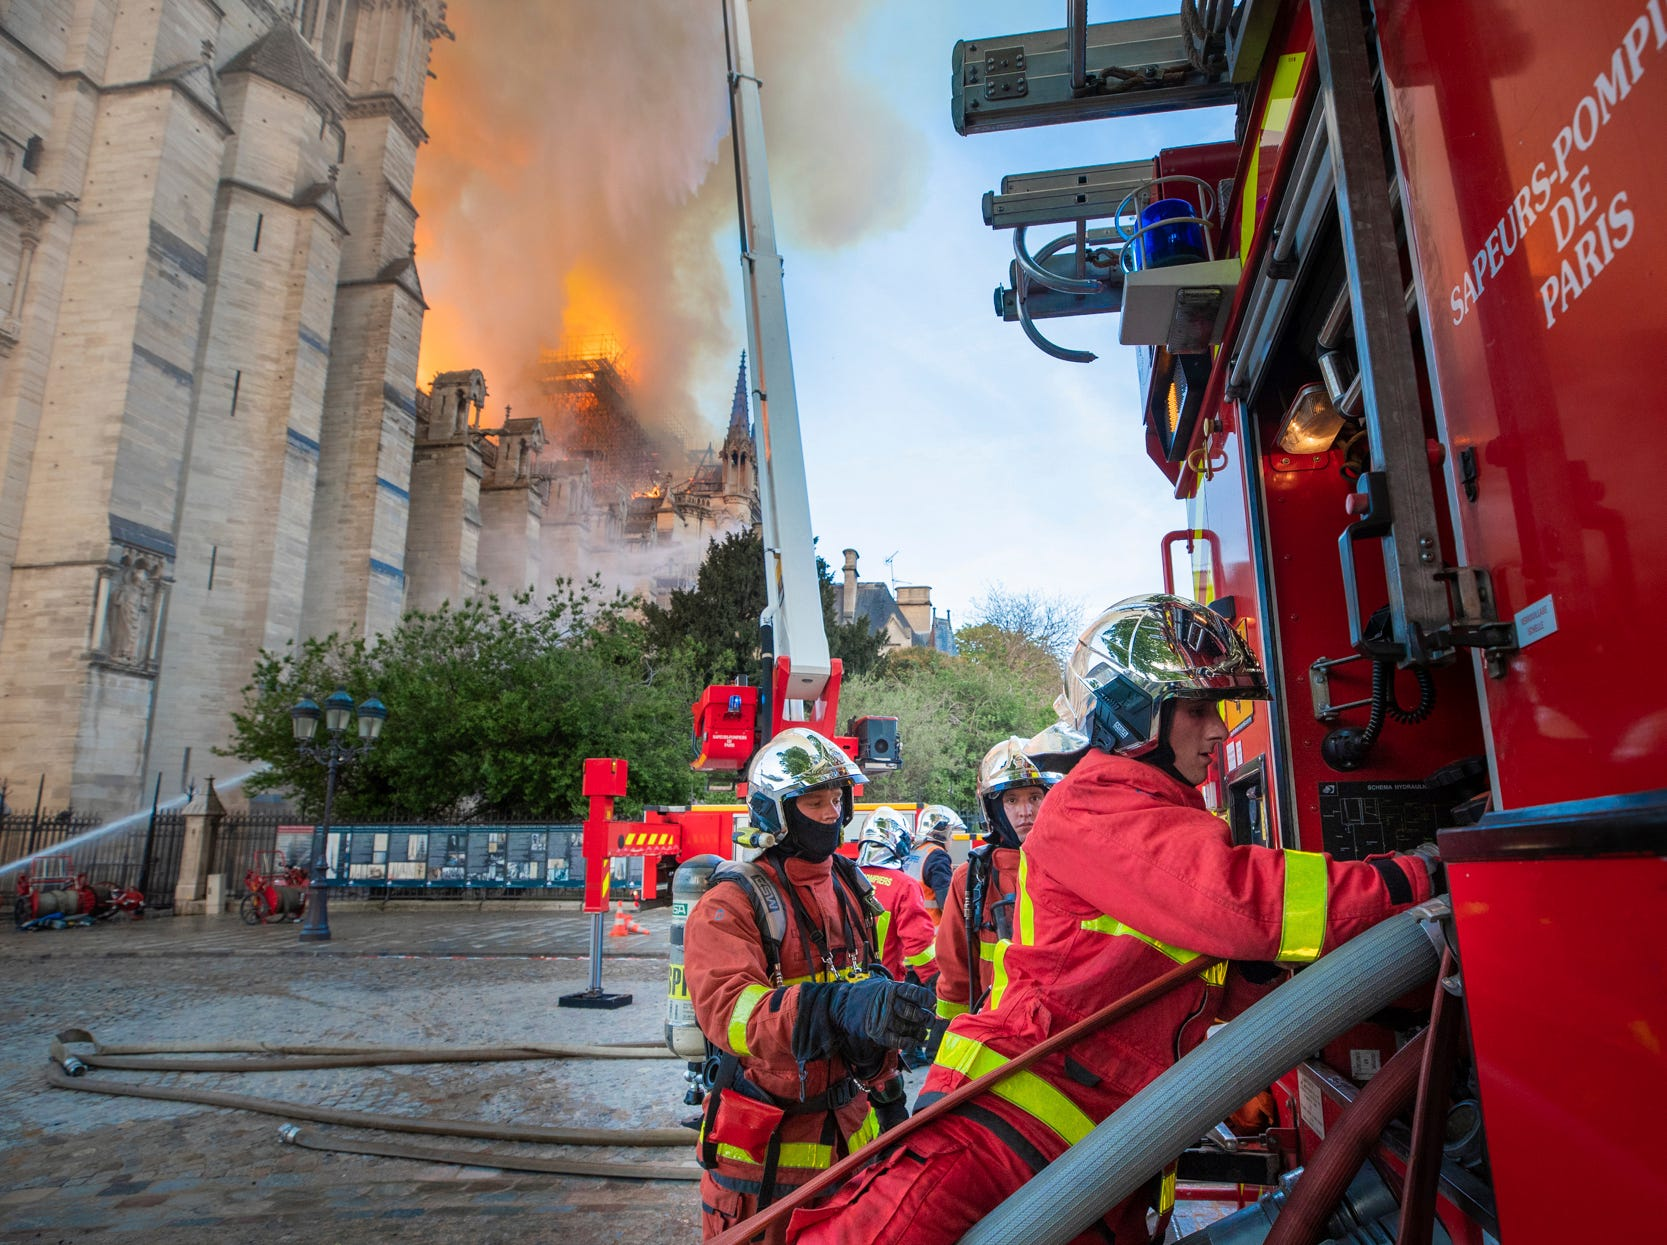 This photo provided Tuesday April 16, 2019 by the Paris Fire Brigade, shows fire fighters working at the burning Notre Dame cathedral, Monday April 15, 2019. Experts assessed the blackened shell of Paris' iconic Notre Dame Tuesday morning to establish next steps to save what remains after a devastating fire destroyed much of the cathedral that had survived almost 900 years of history. (Benoit Moser, BSPP via AP)